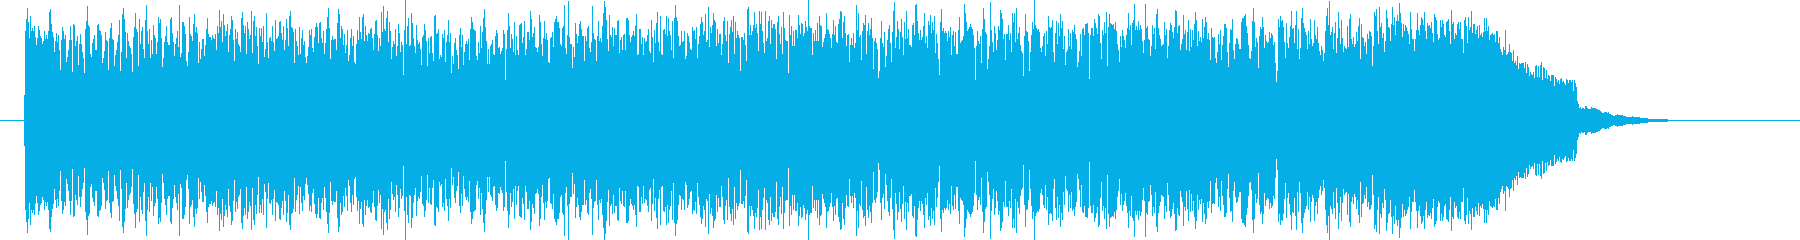 Uplifting techno sound's reproduced waveform